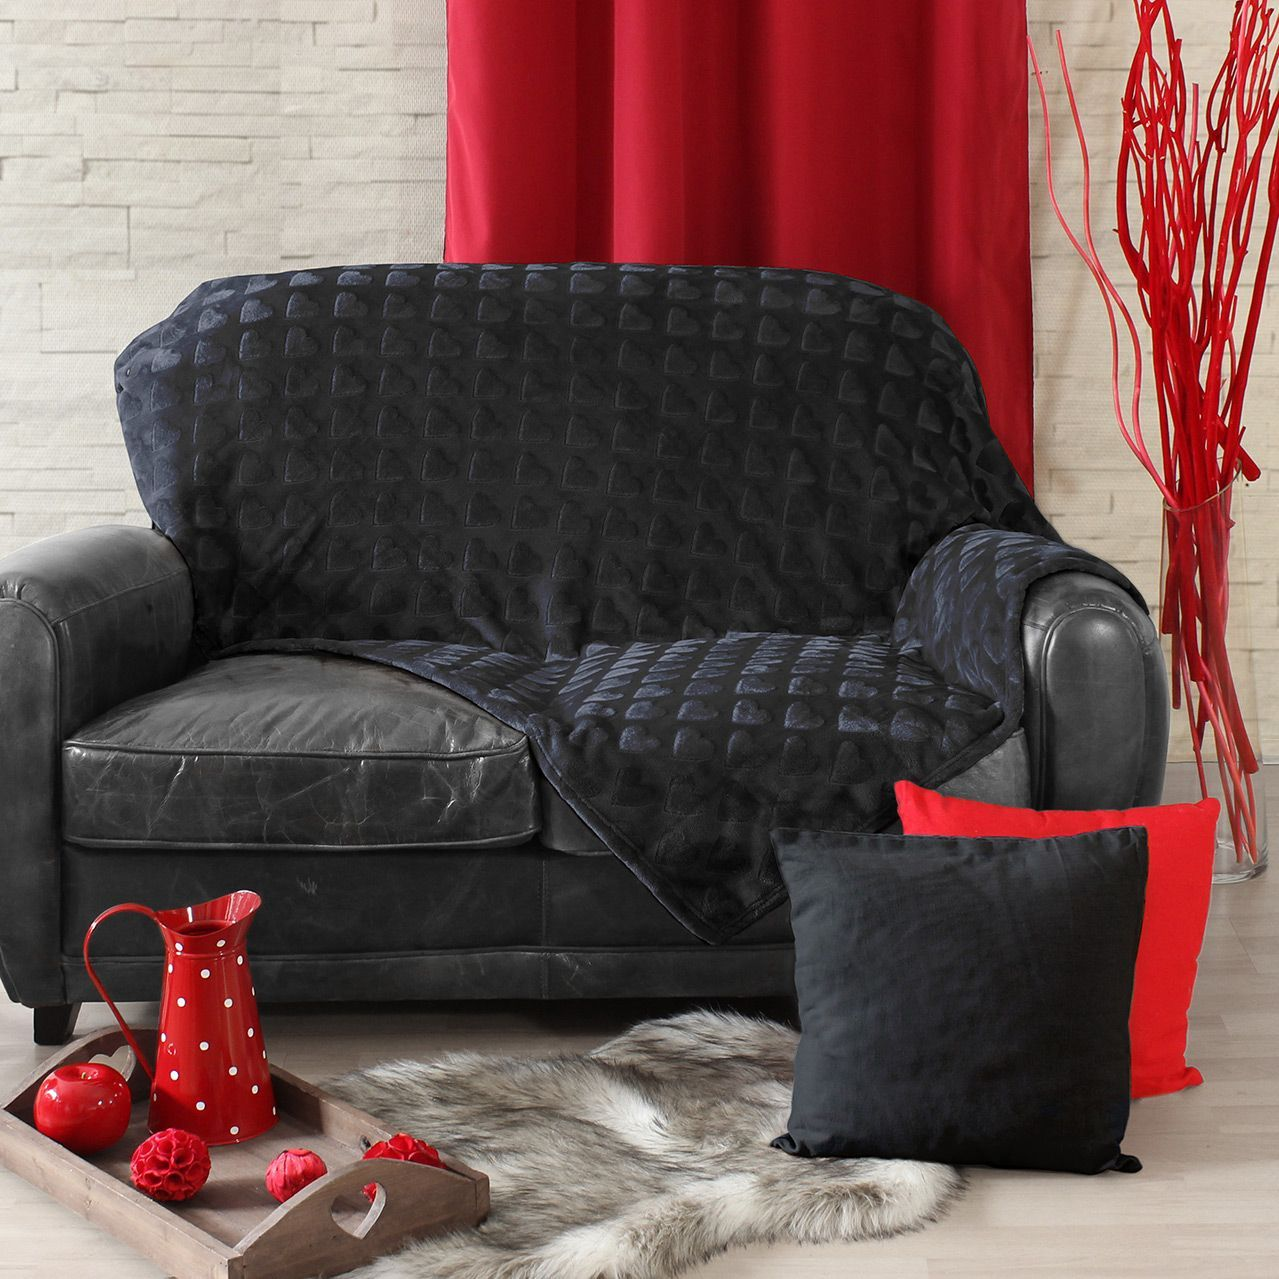 plaid polaire c ur flanelle anthracite plaid cocooning. Black Bedroom Furniture Sets. Home Design Ideas